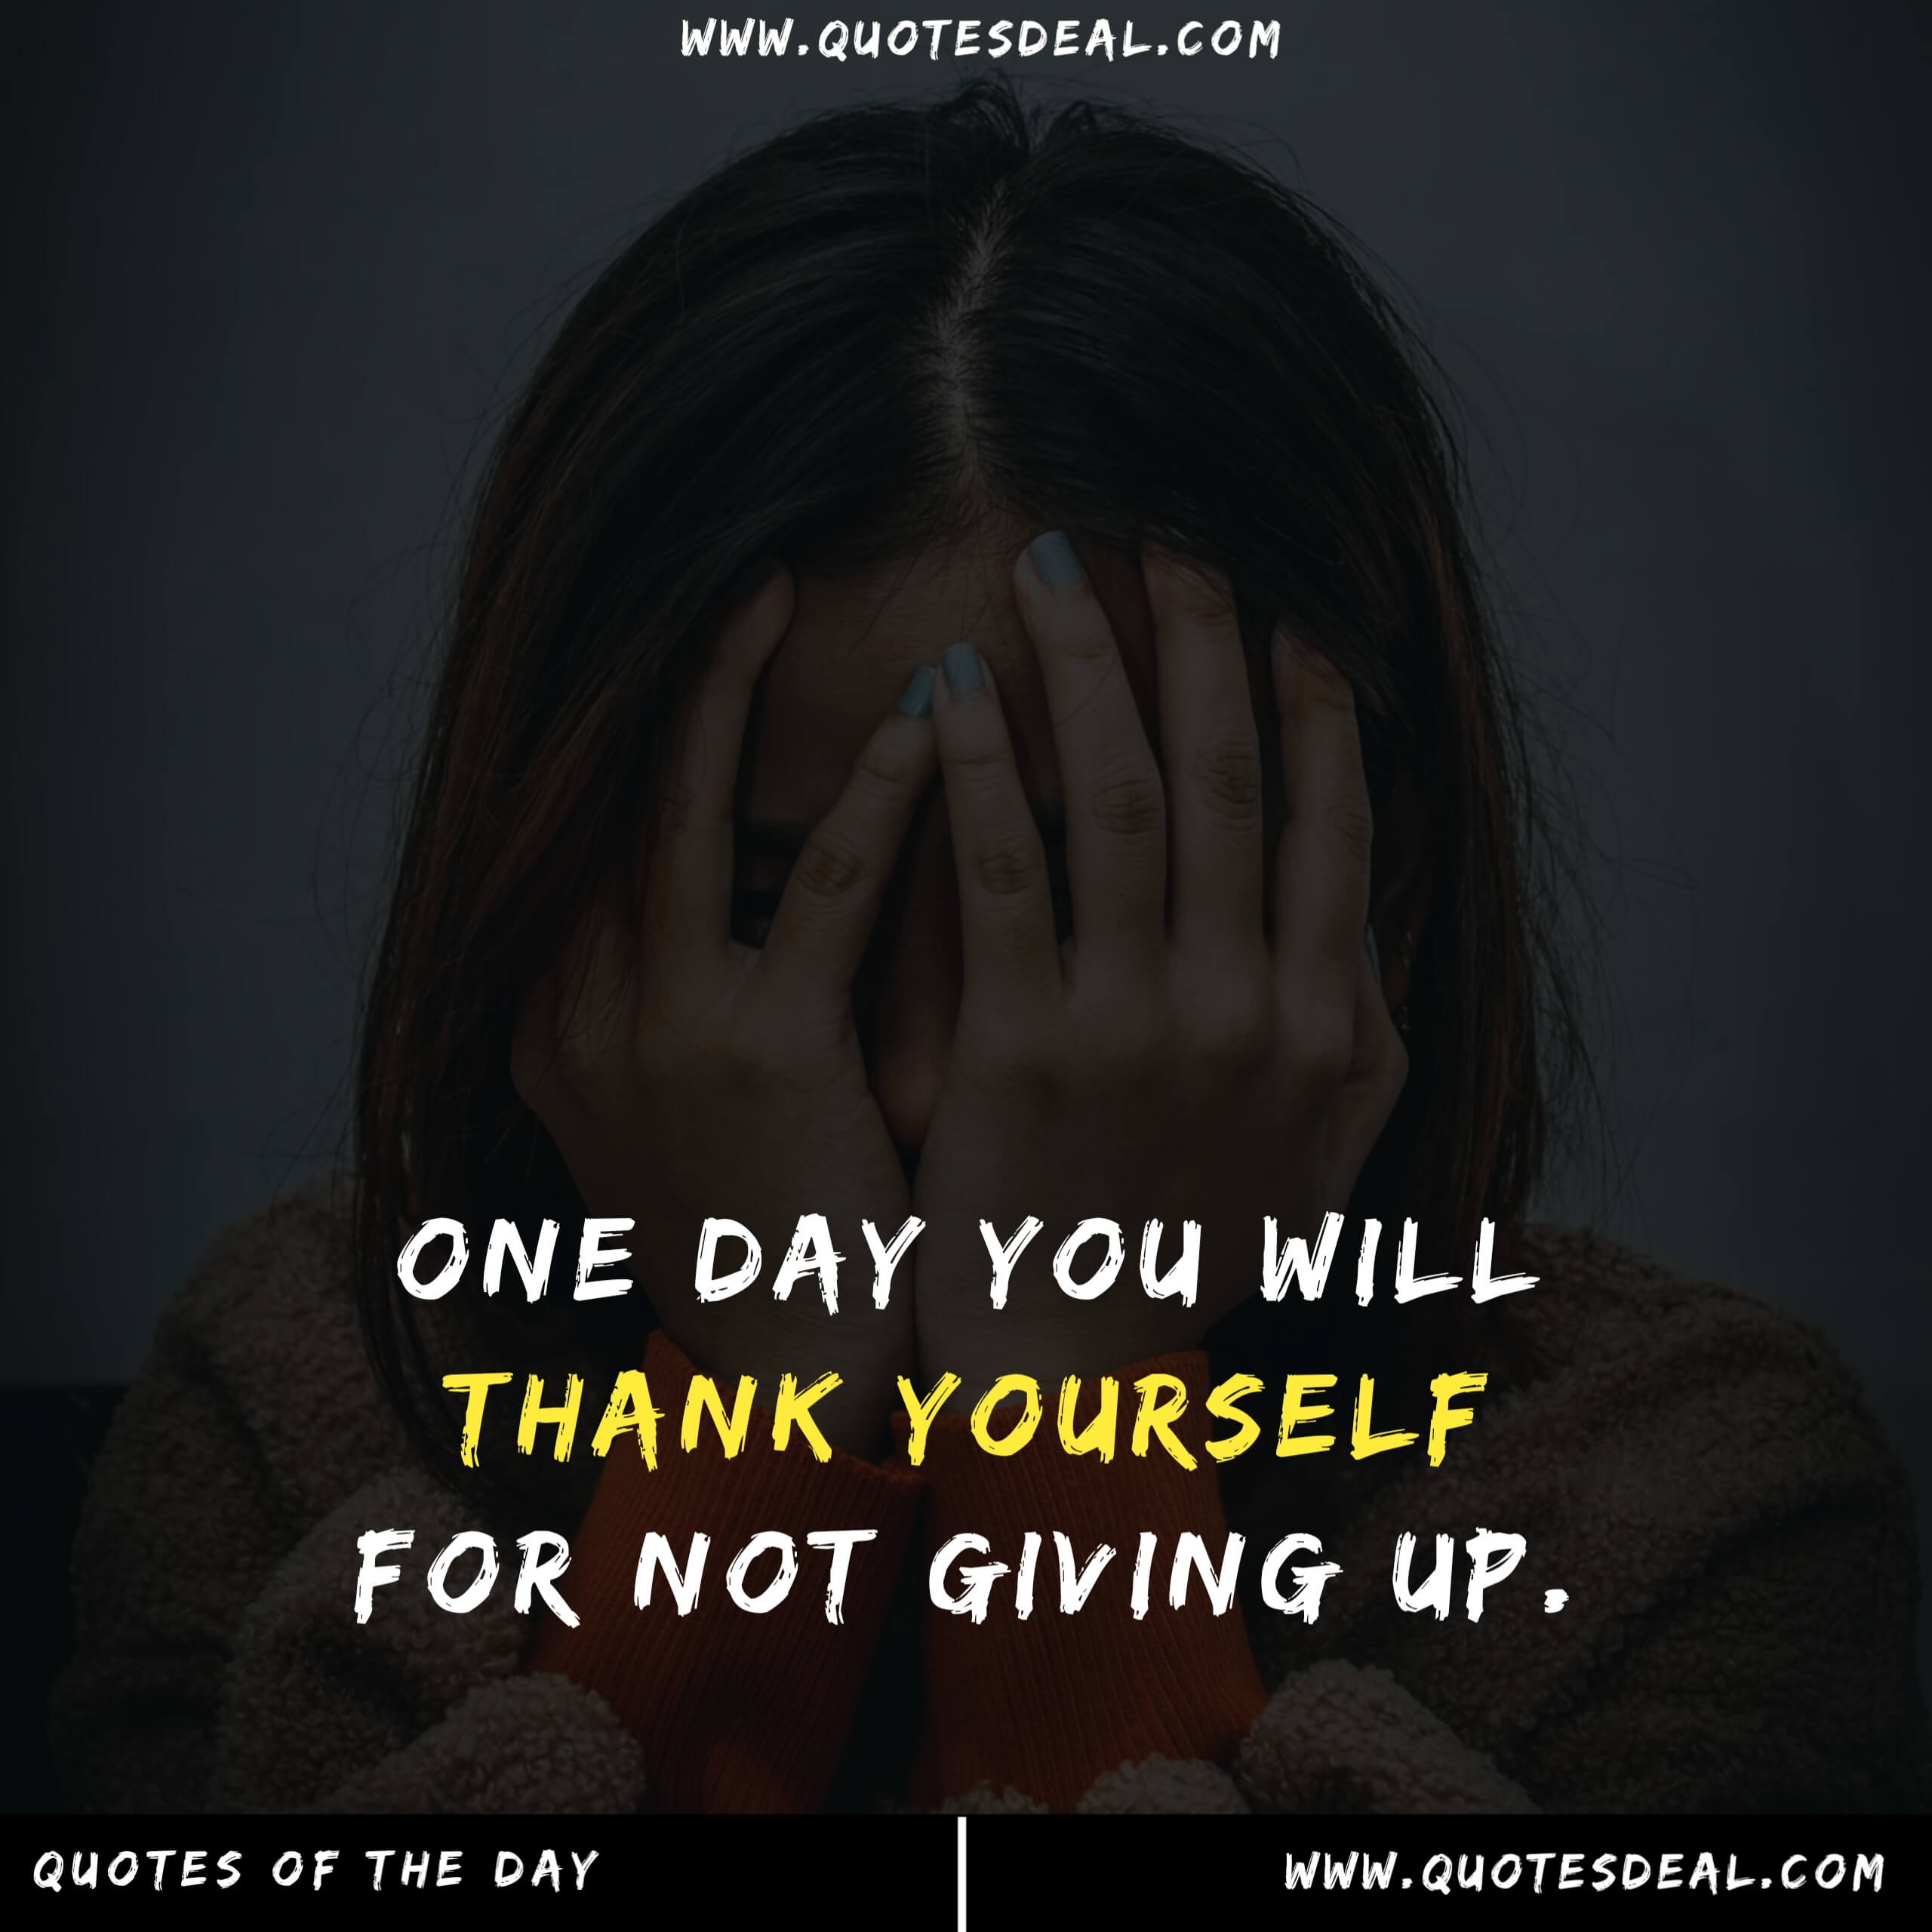 One day you will thank yourself